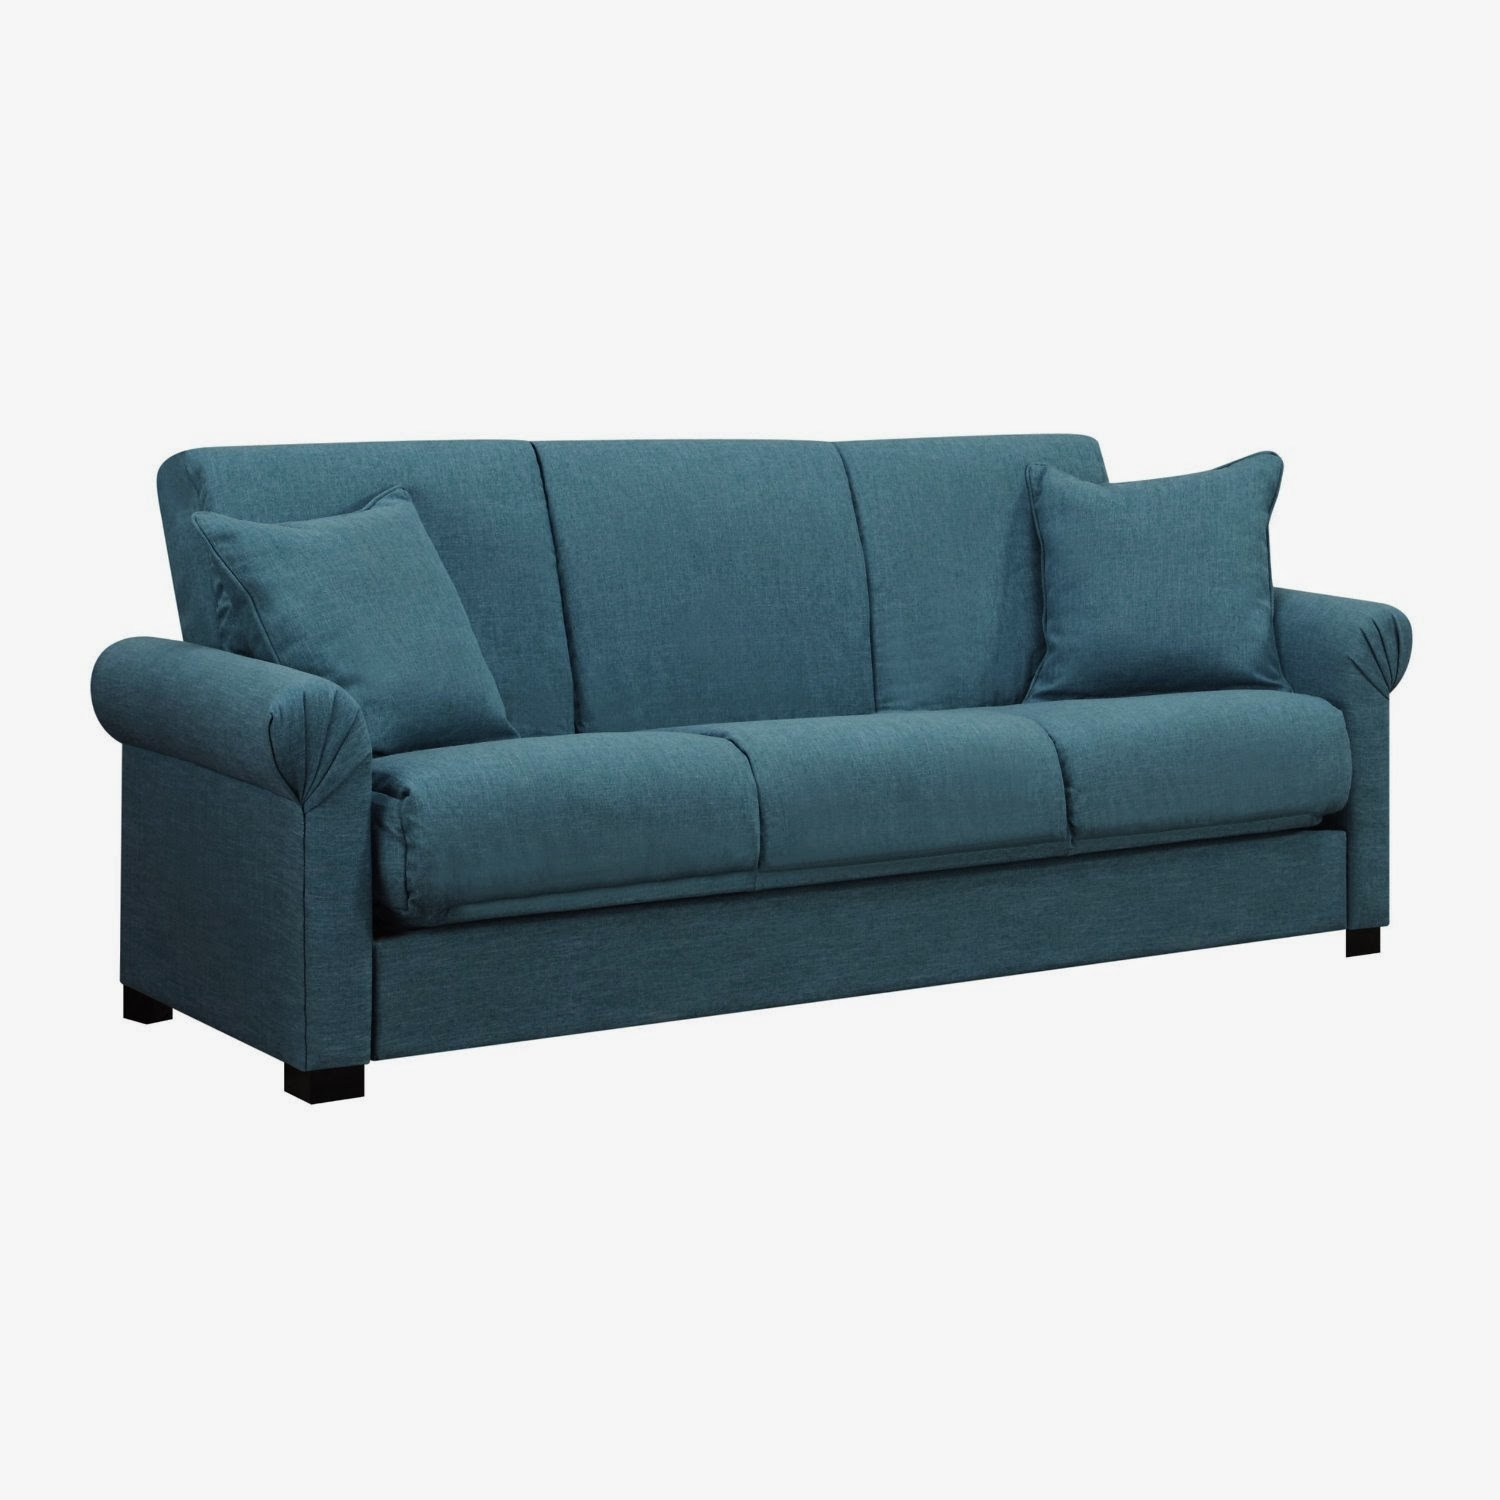 Blue couch for Microfiber sofa